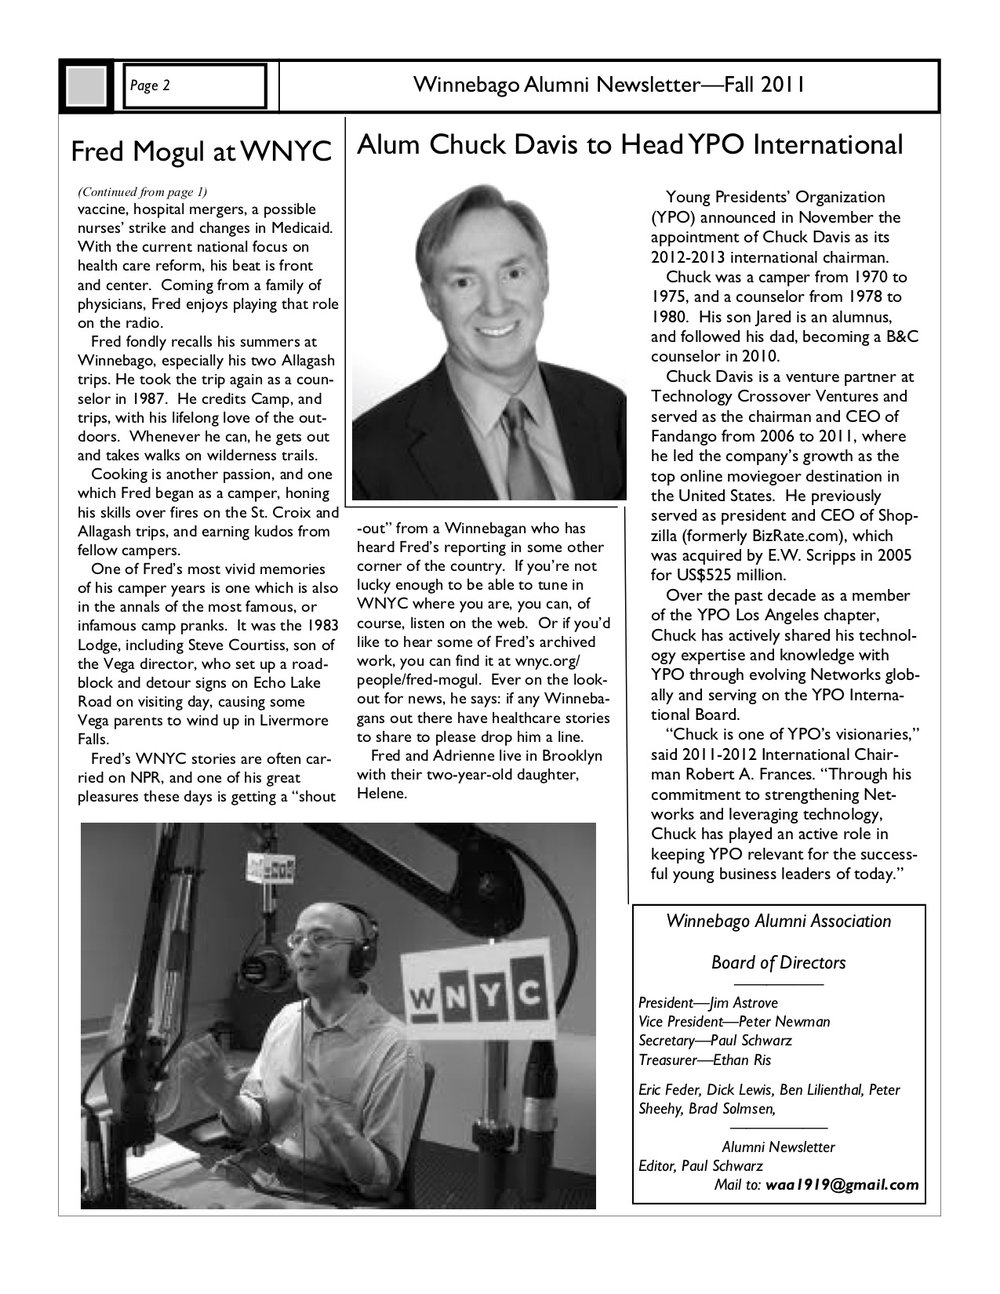 2011 Fall Newsletter 2.jpg